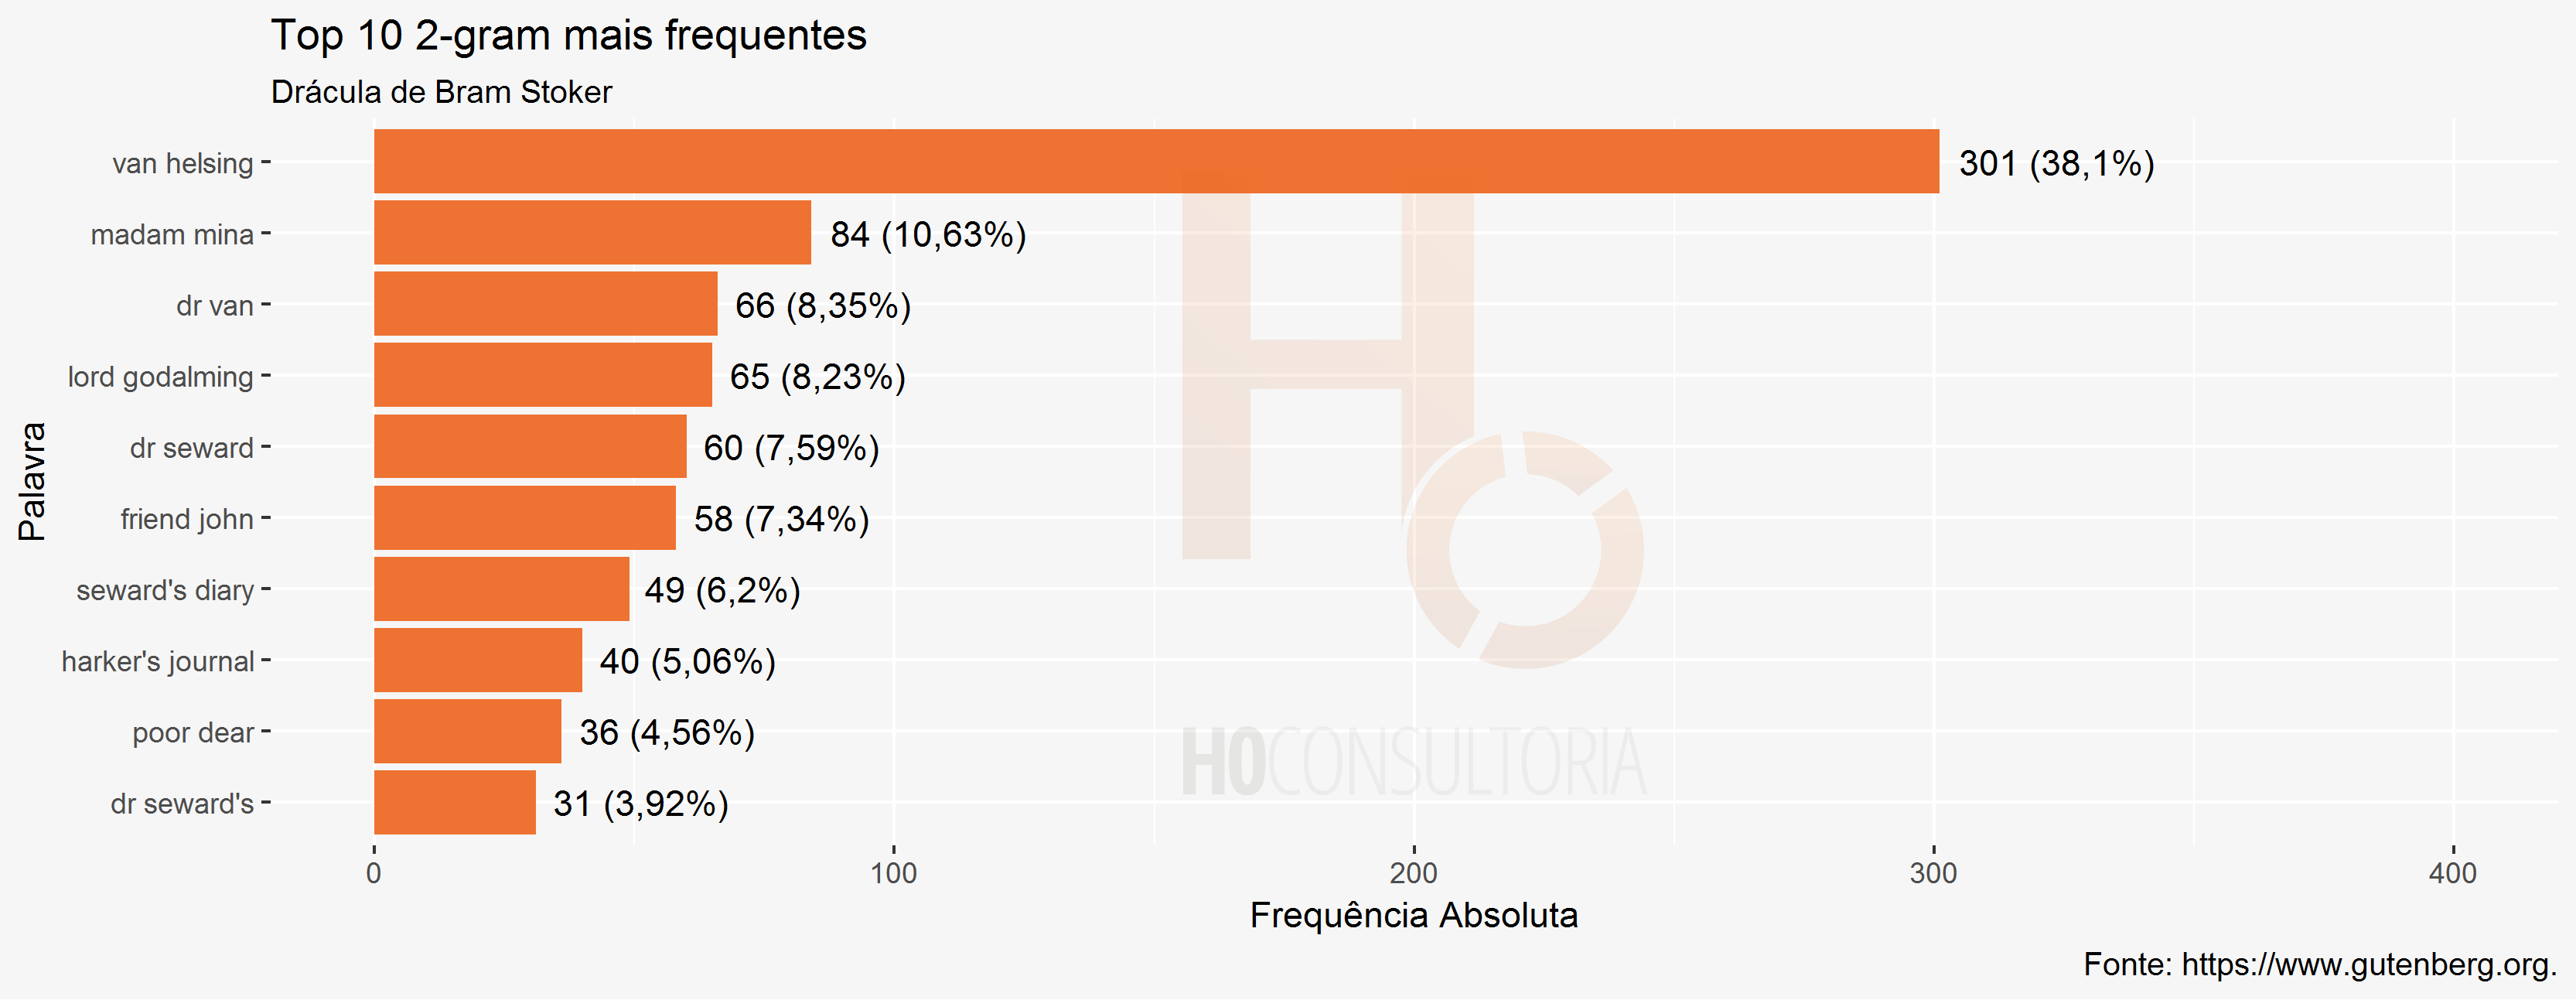 Top 10 2-gram mais frequentes